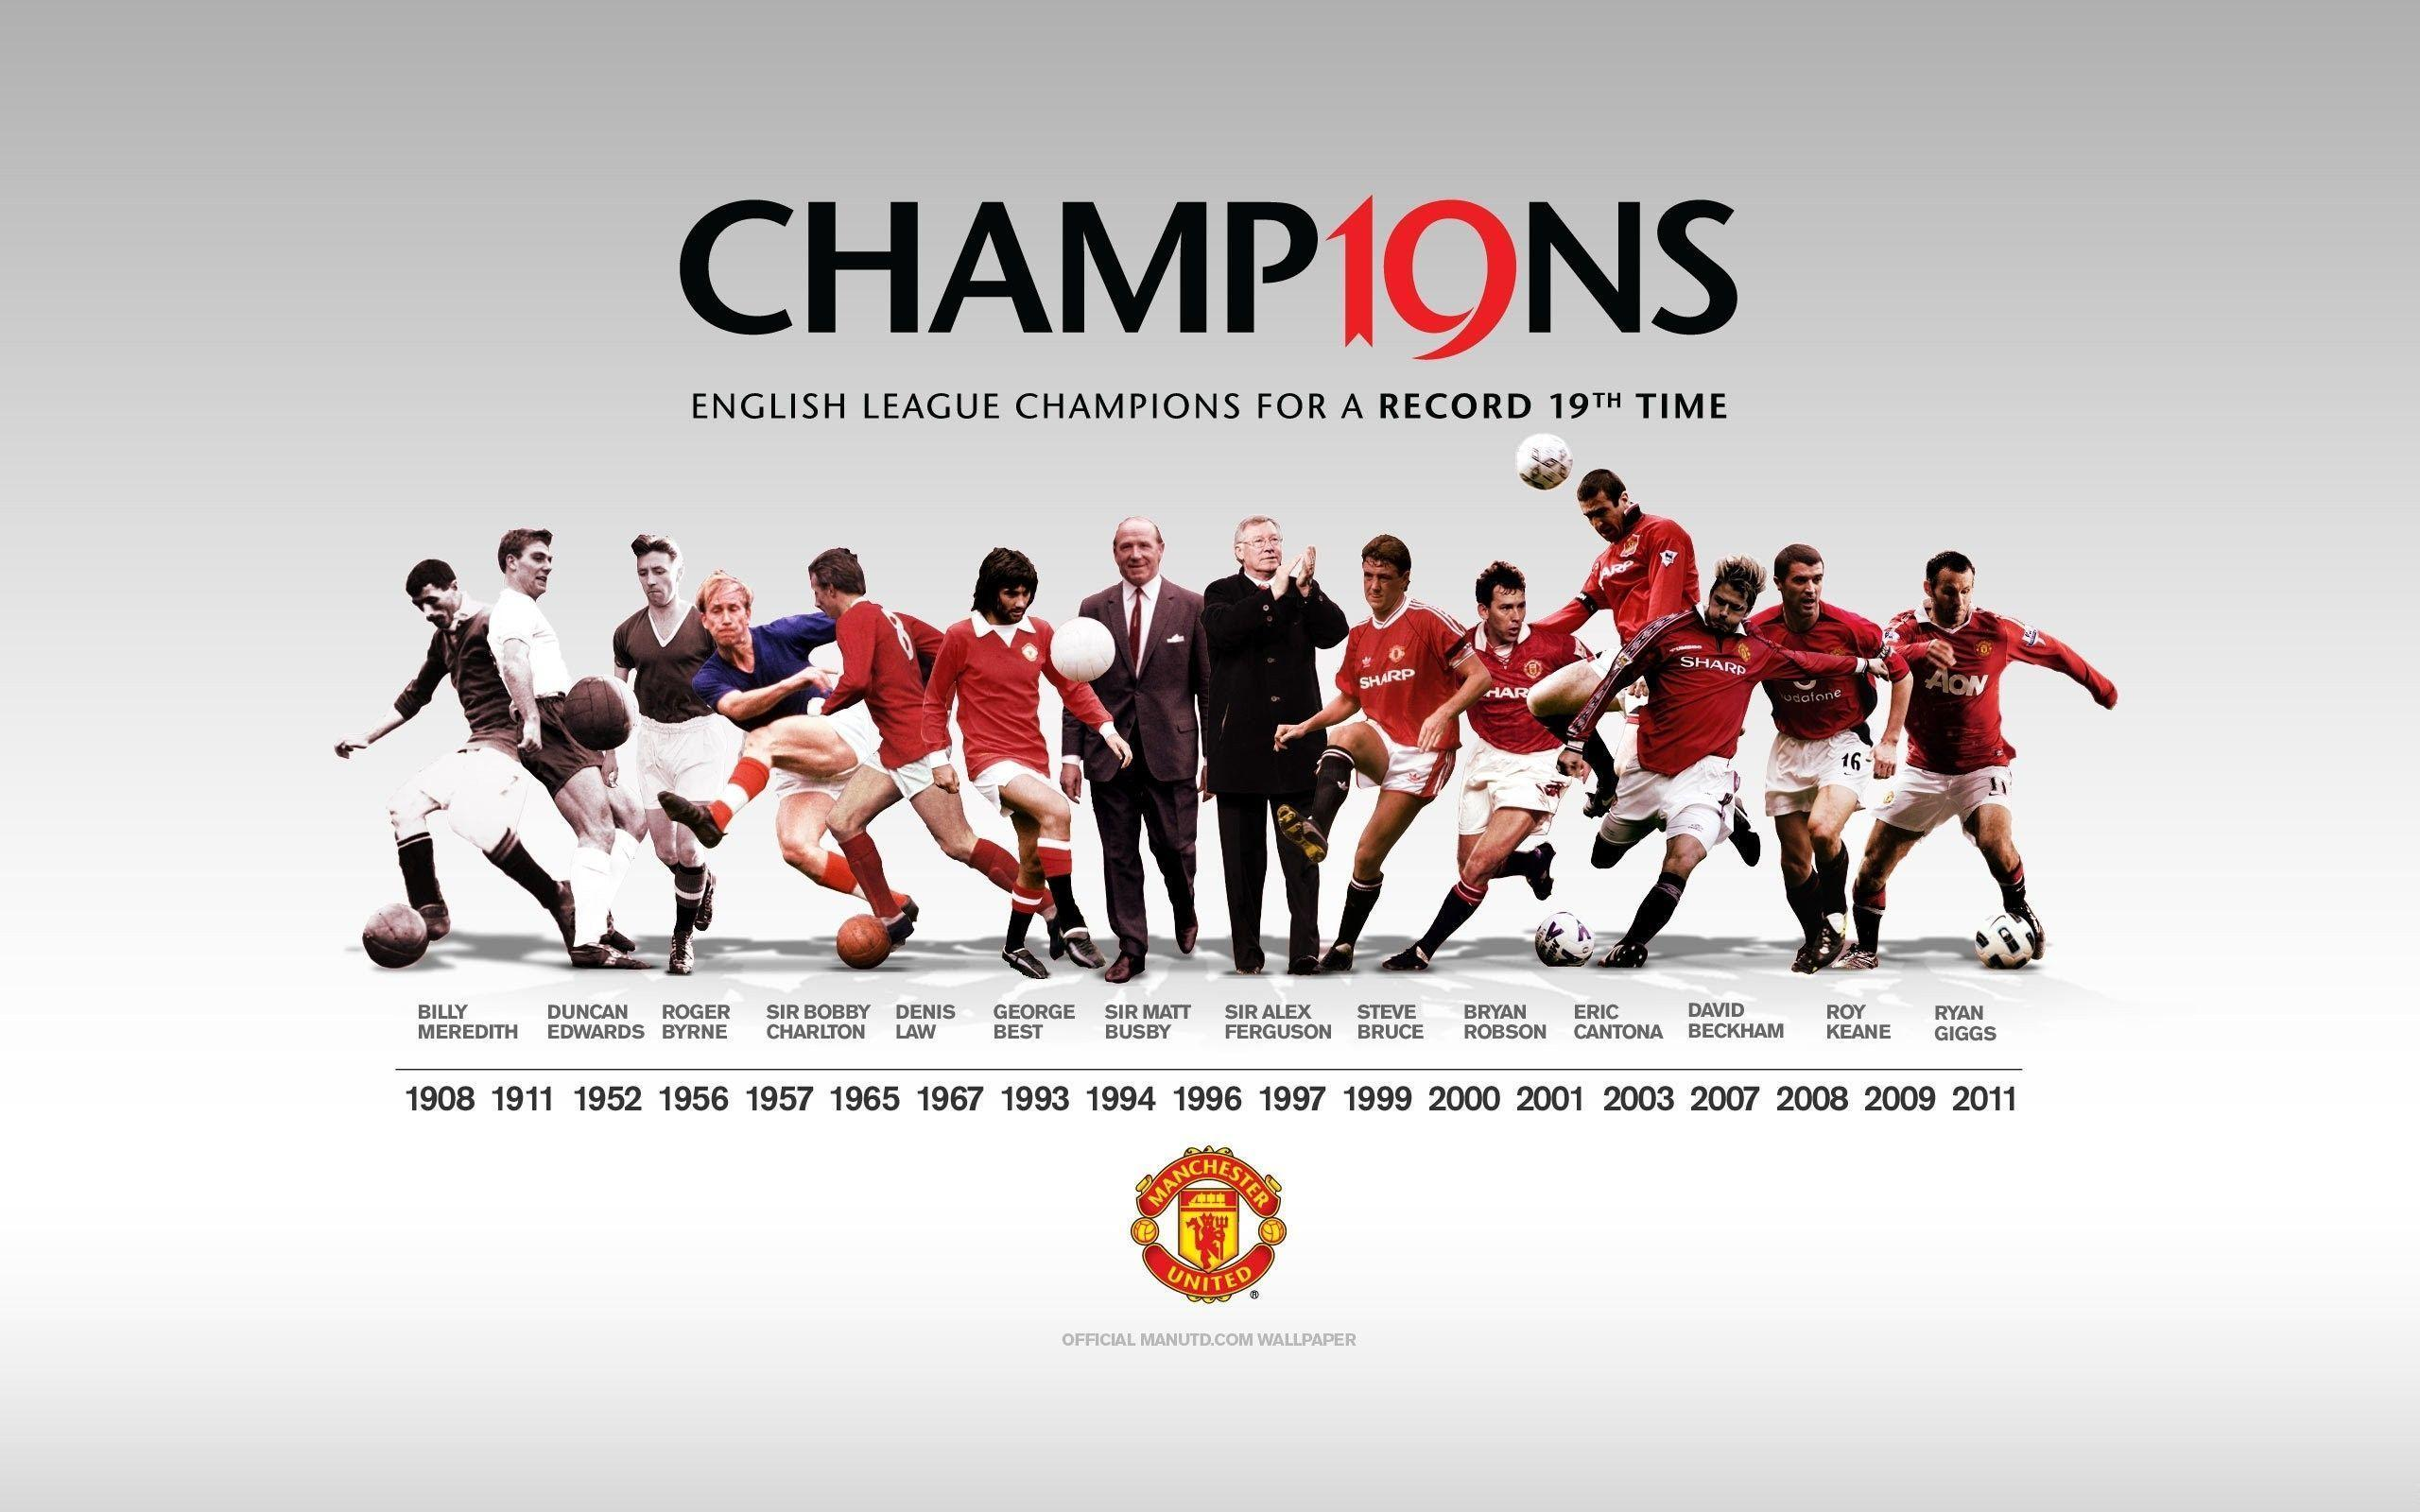 Manchester United Hd Wallpapers 1080p 22091 | STUDIOBIN